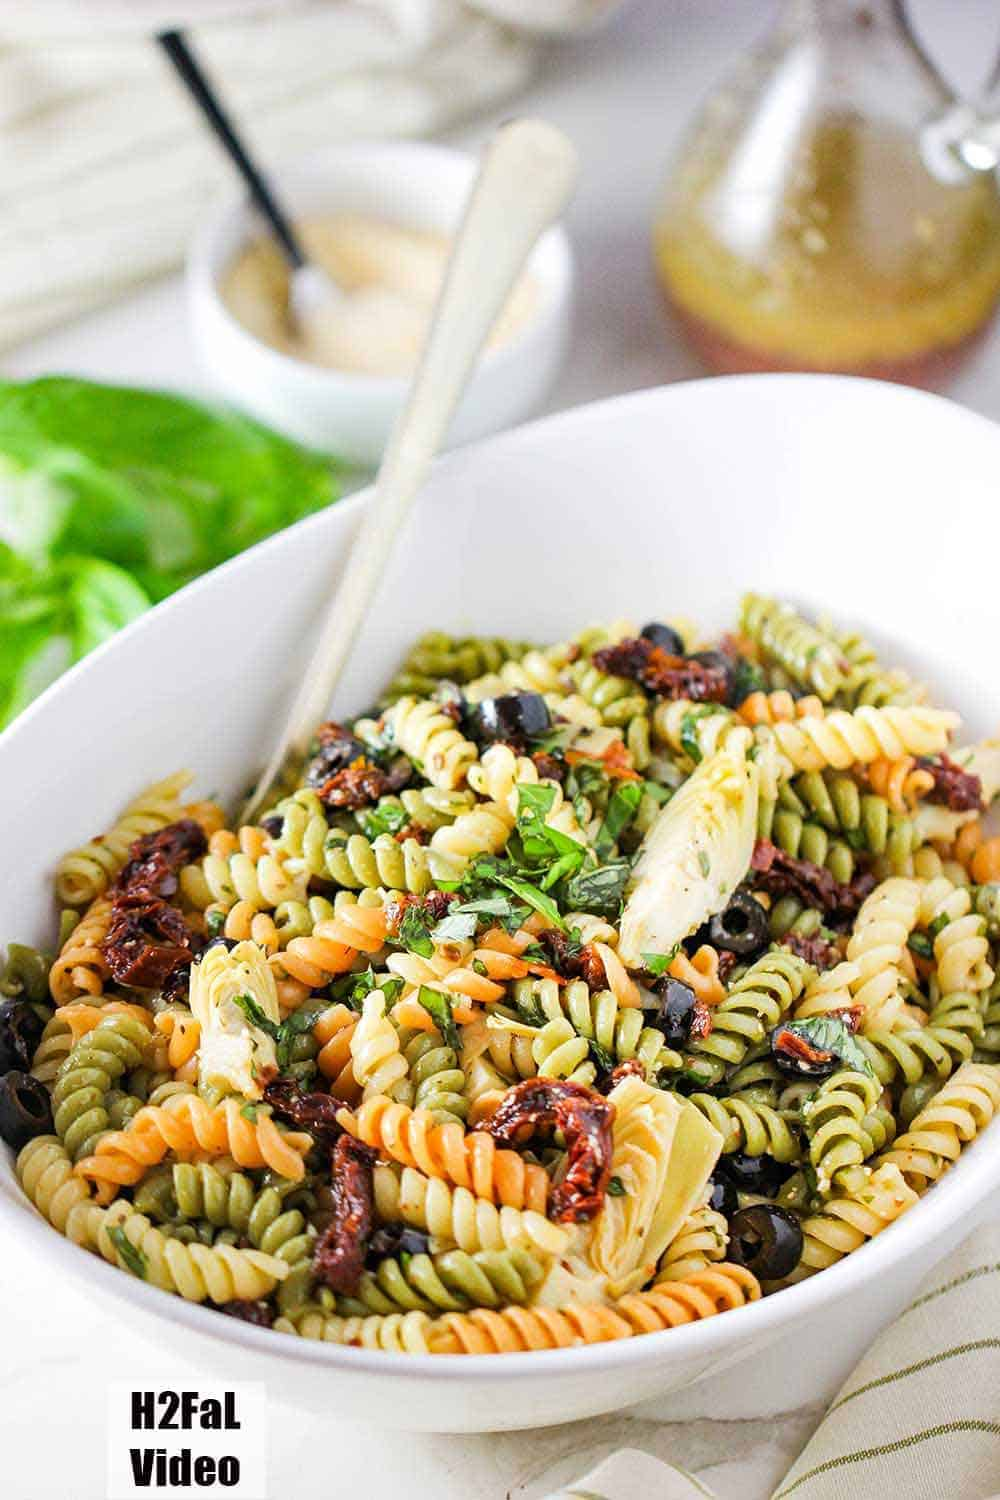 Classic Pasta Salad in a large white serving bowl with dressing and cheese nearby.